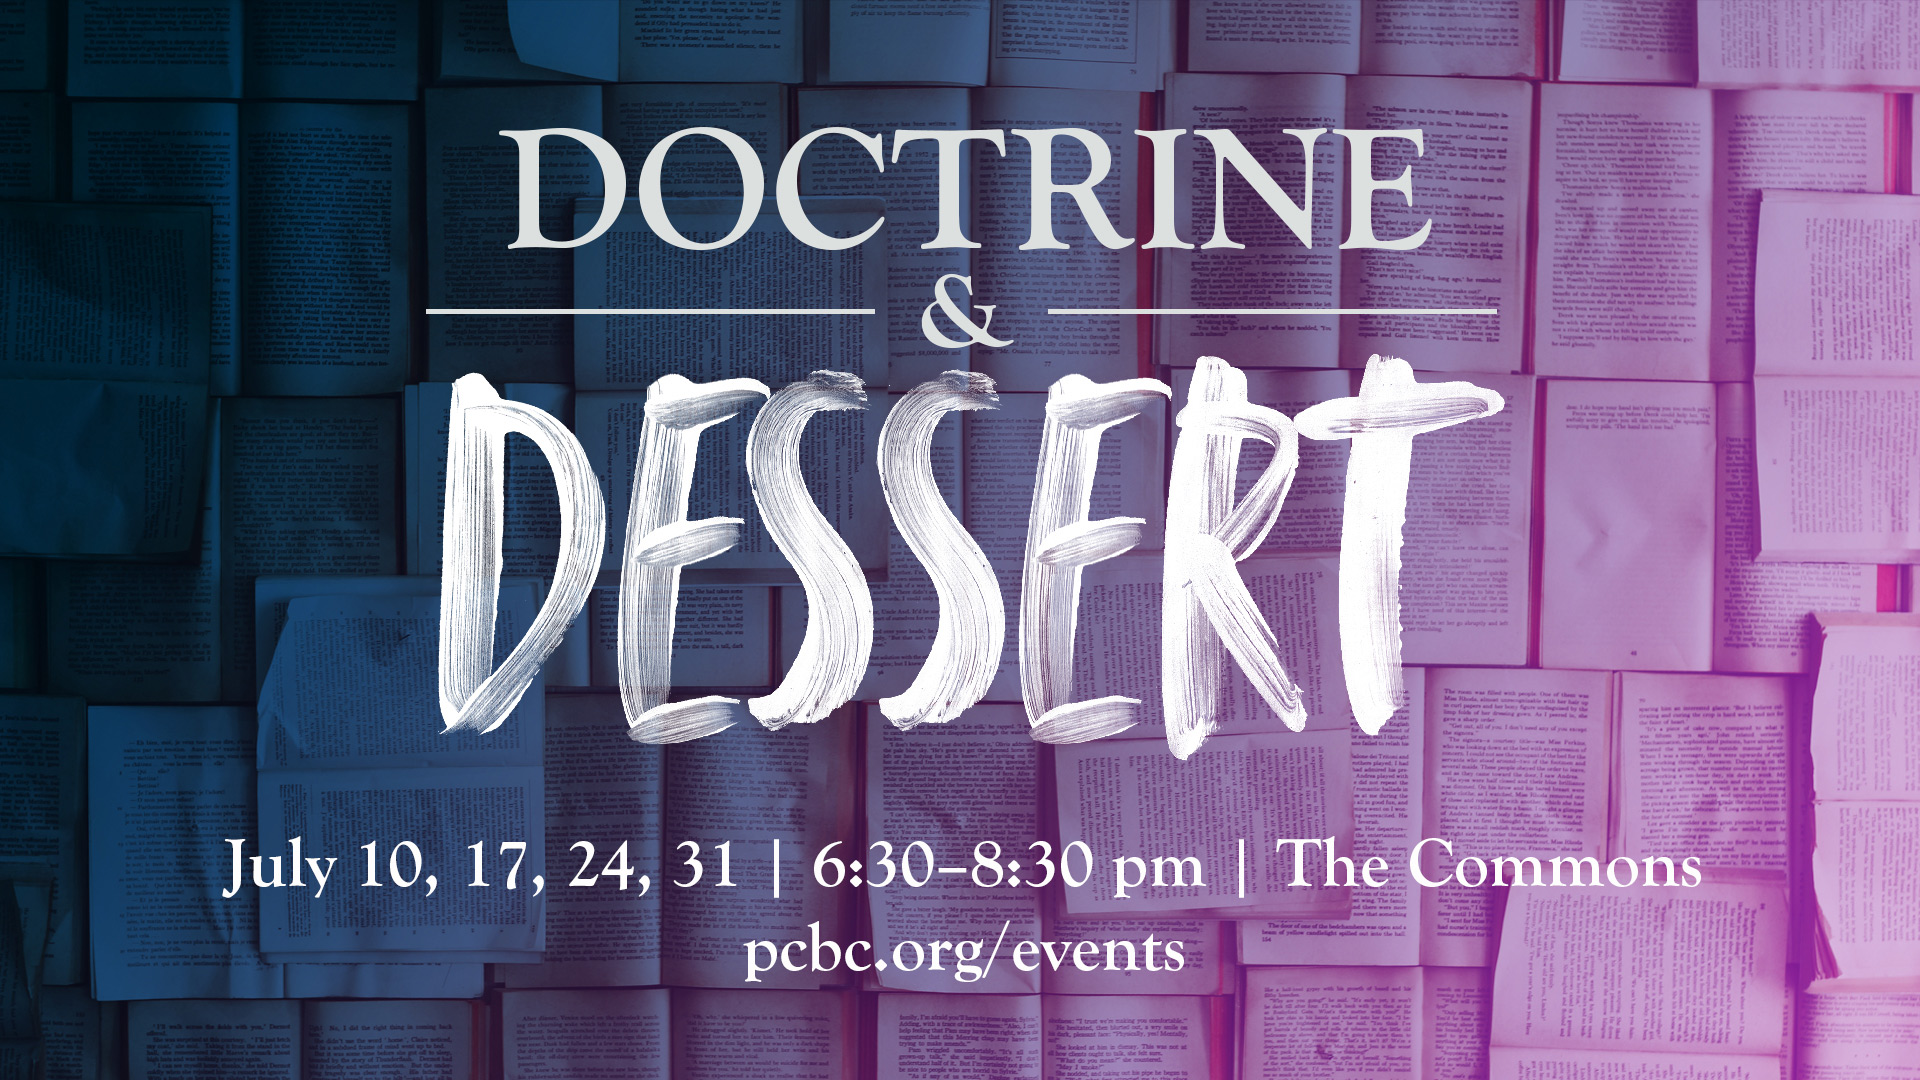 Doctrine & Dessert